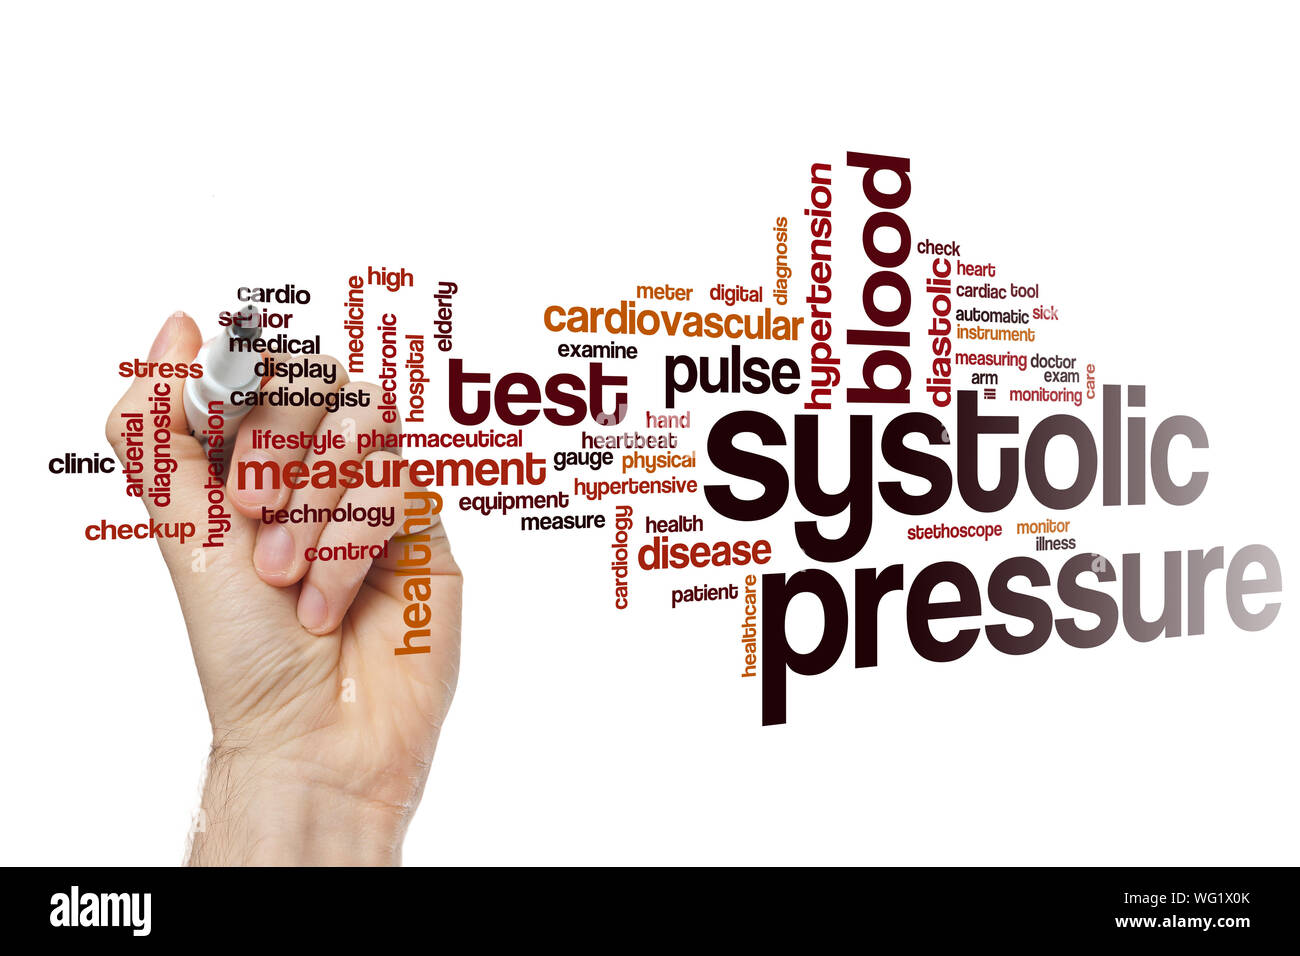 Systolic pressure word cloud concept Stock Photo